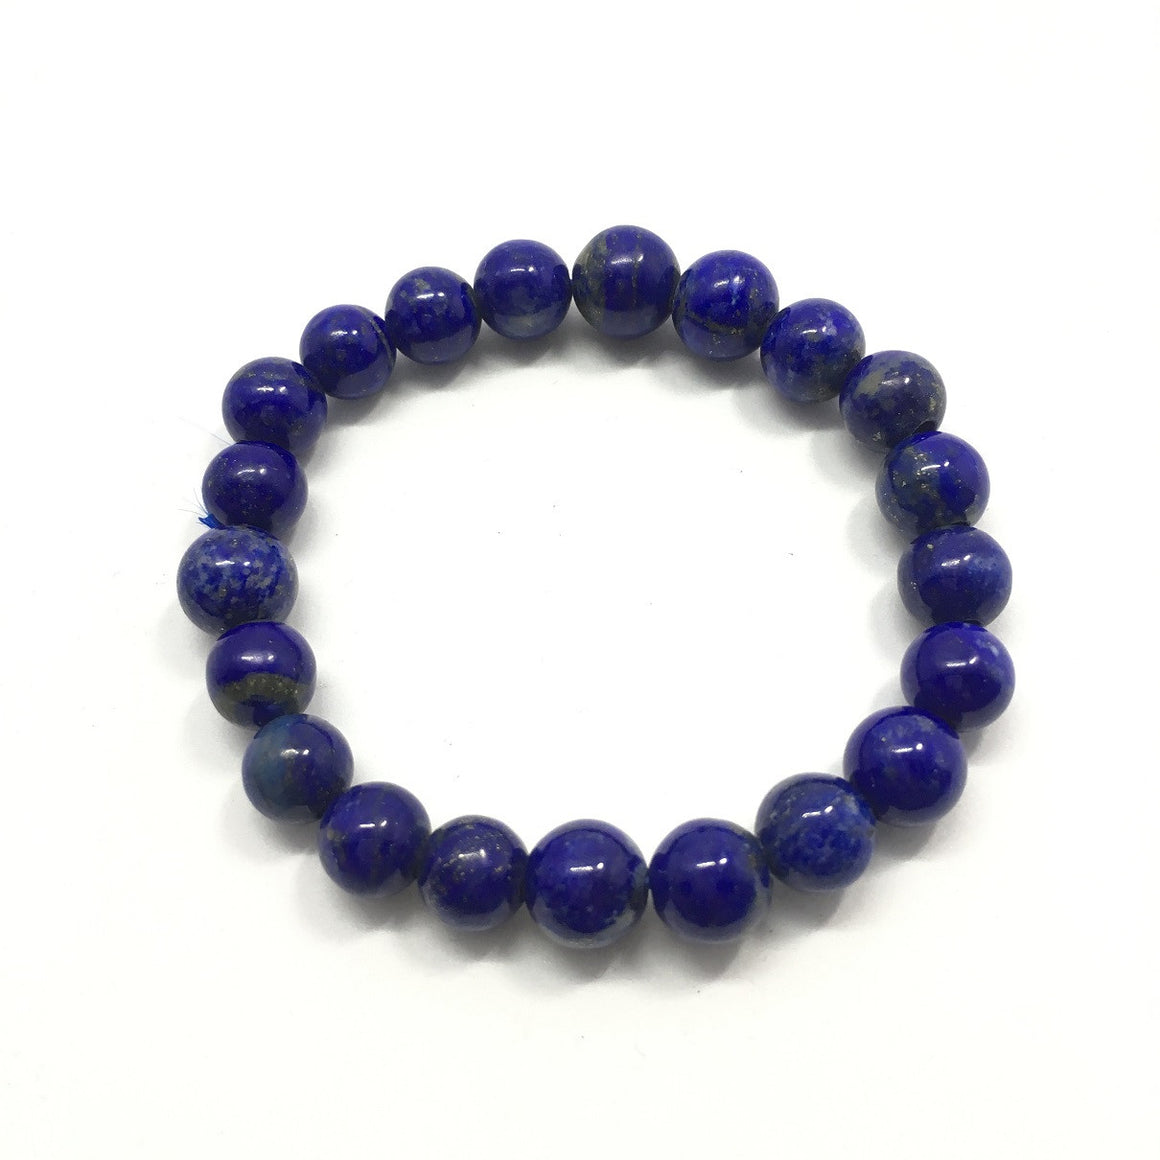 62.5 Carat , 21 Round Beads Handmade Bracelet With Elastic Stretch,Grade AAA Quality Beads